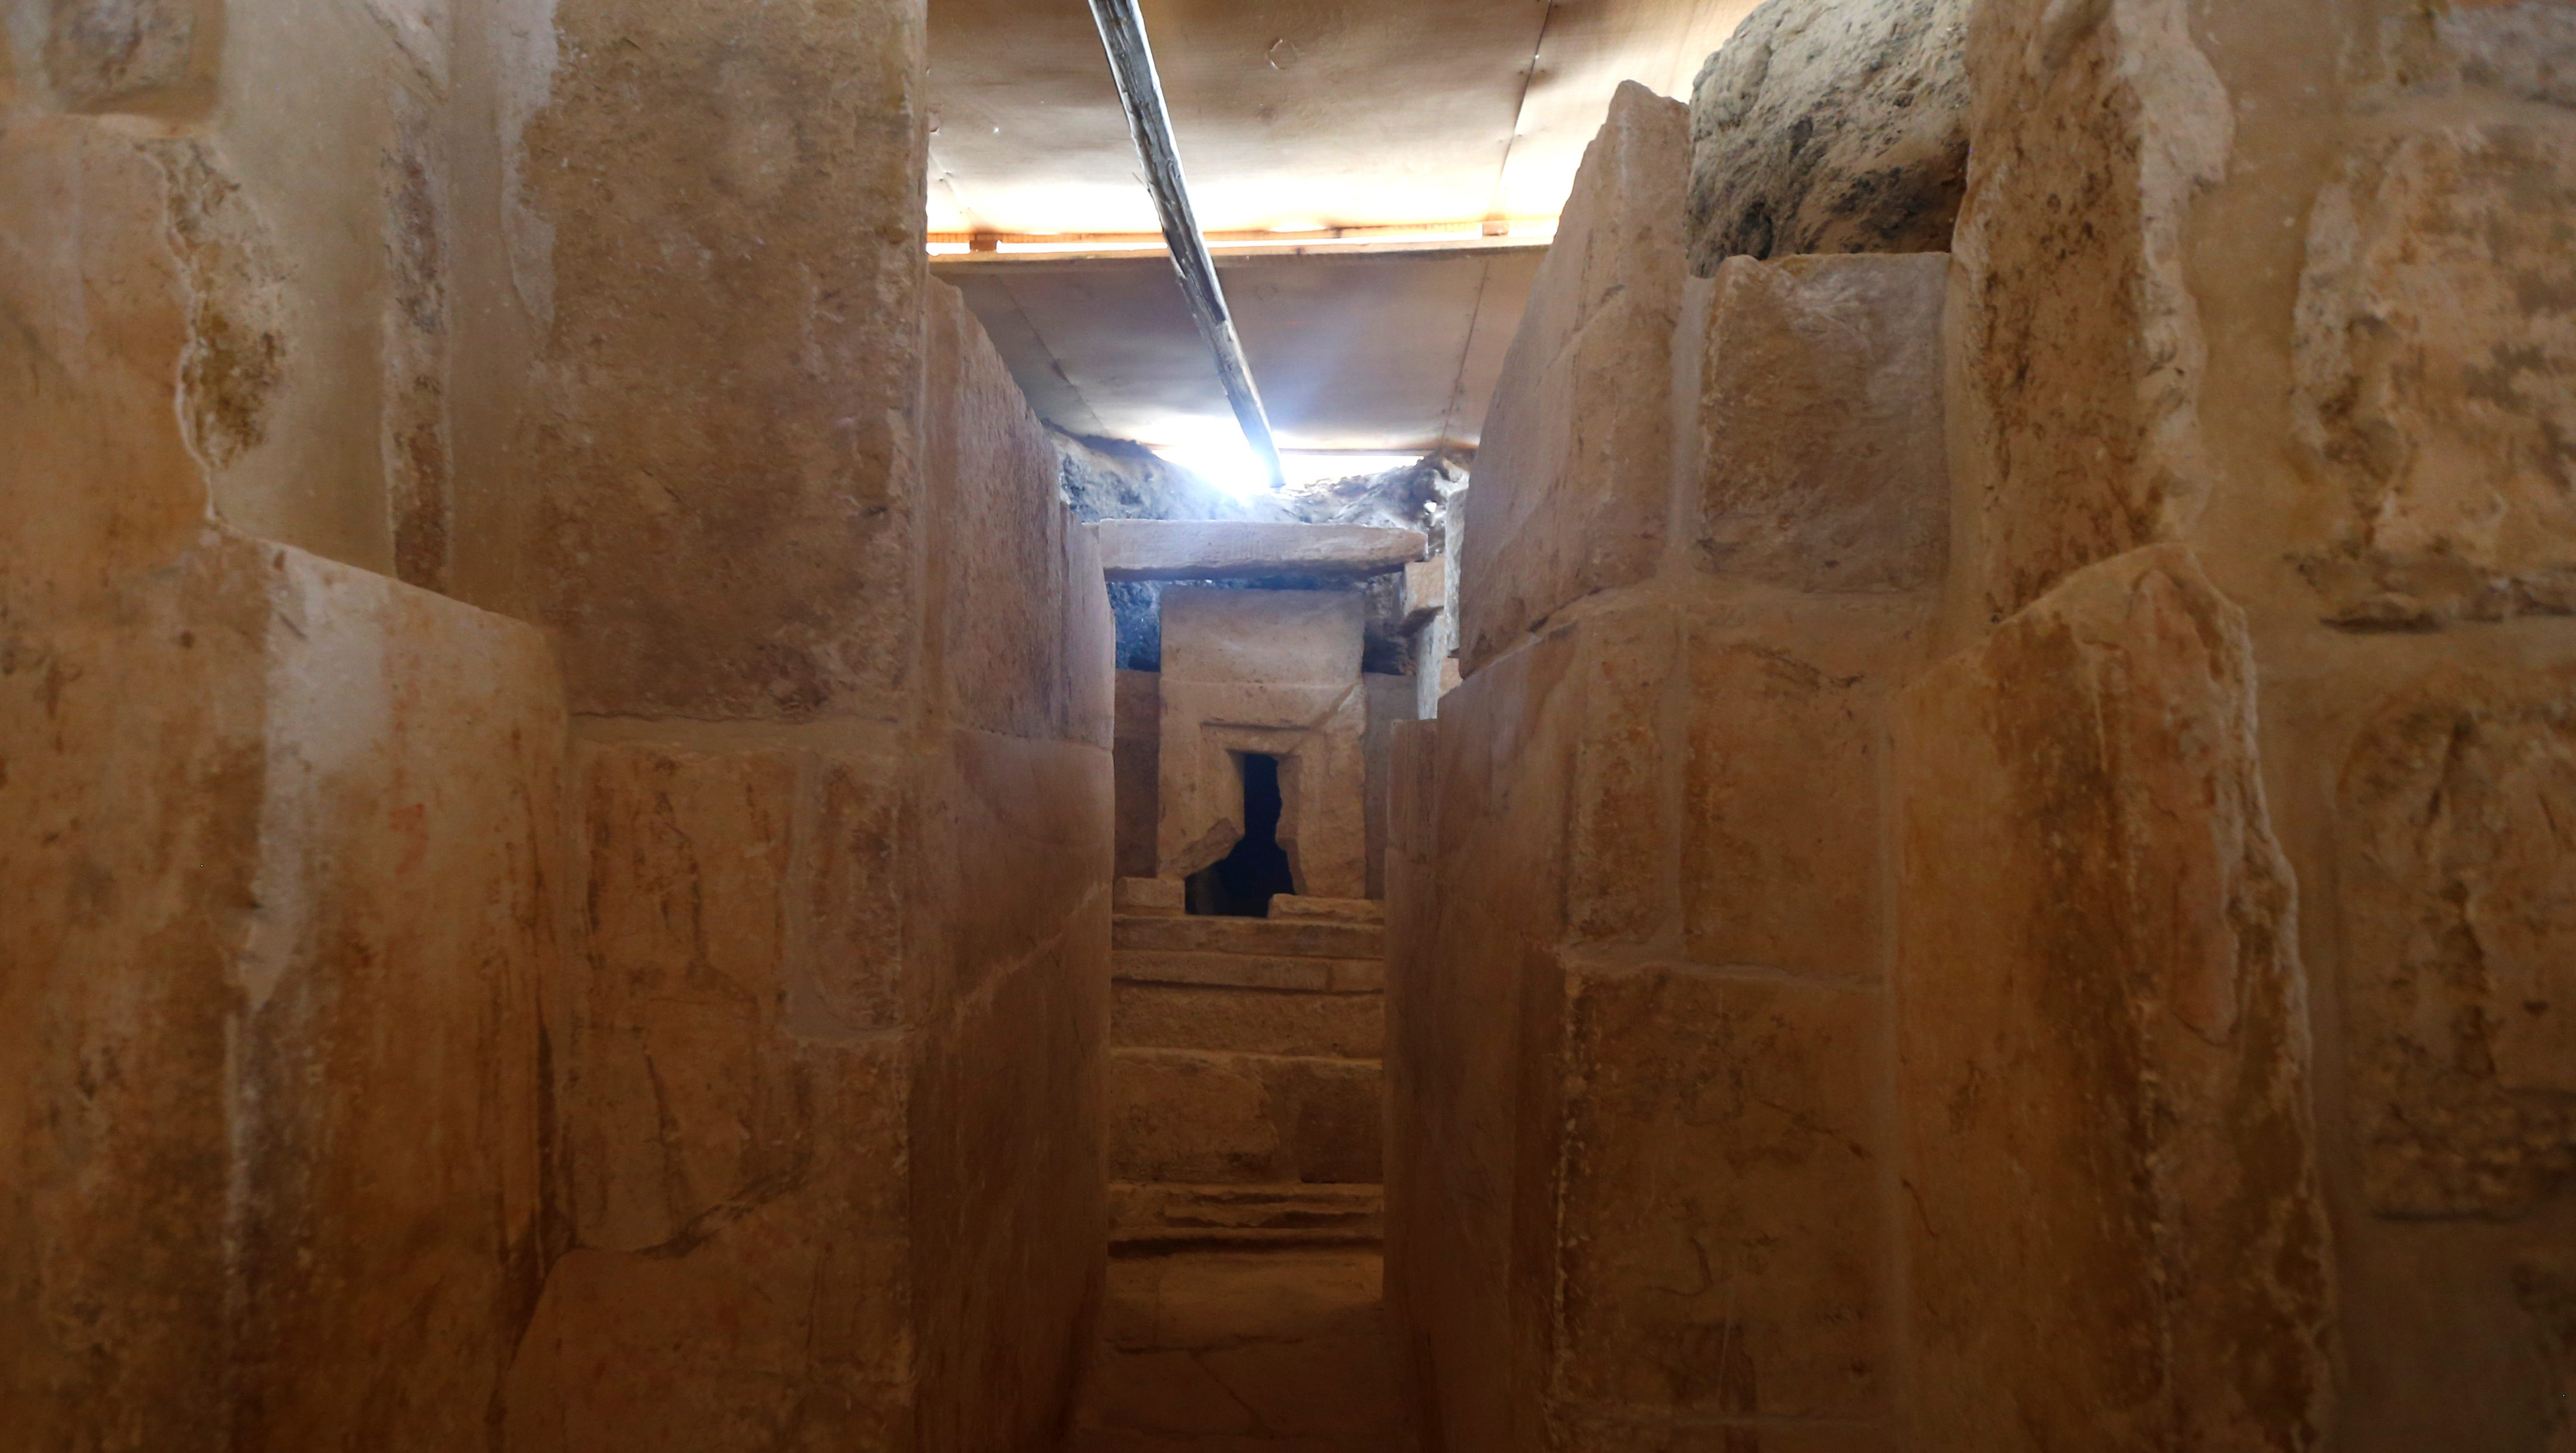 The discovery of an Old Kingdom tomb from Egypt's antiquities authorities is seen at the Giza plateau, the site of the three ancient pyramids on the outskirts of Cairo